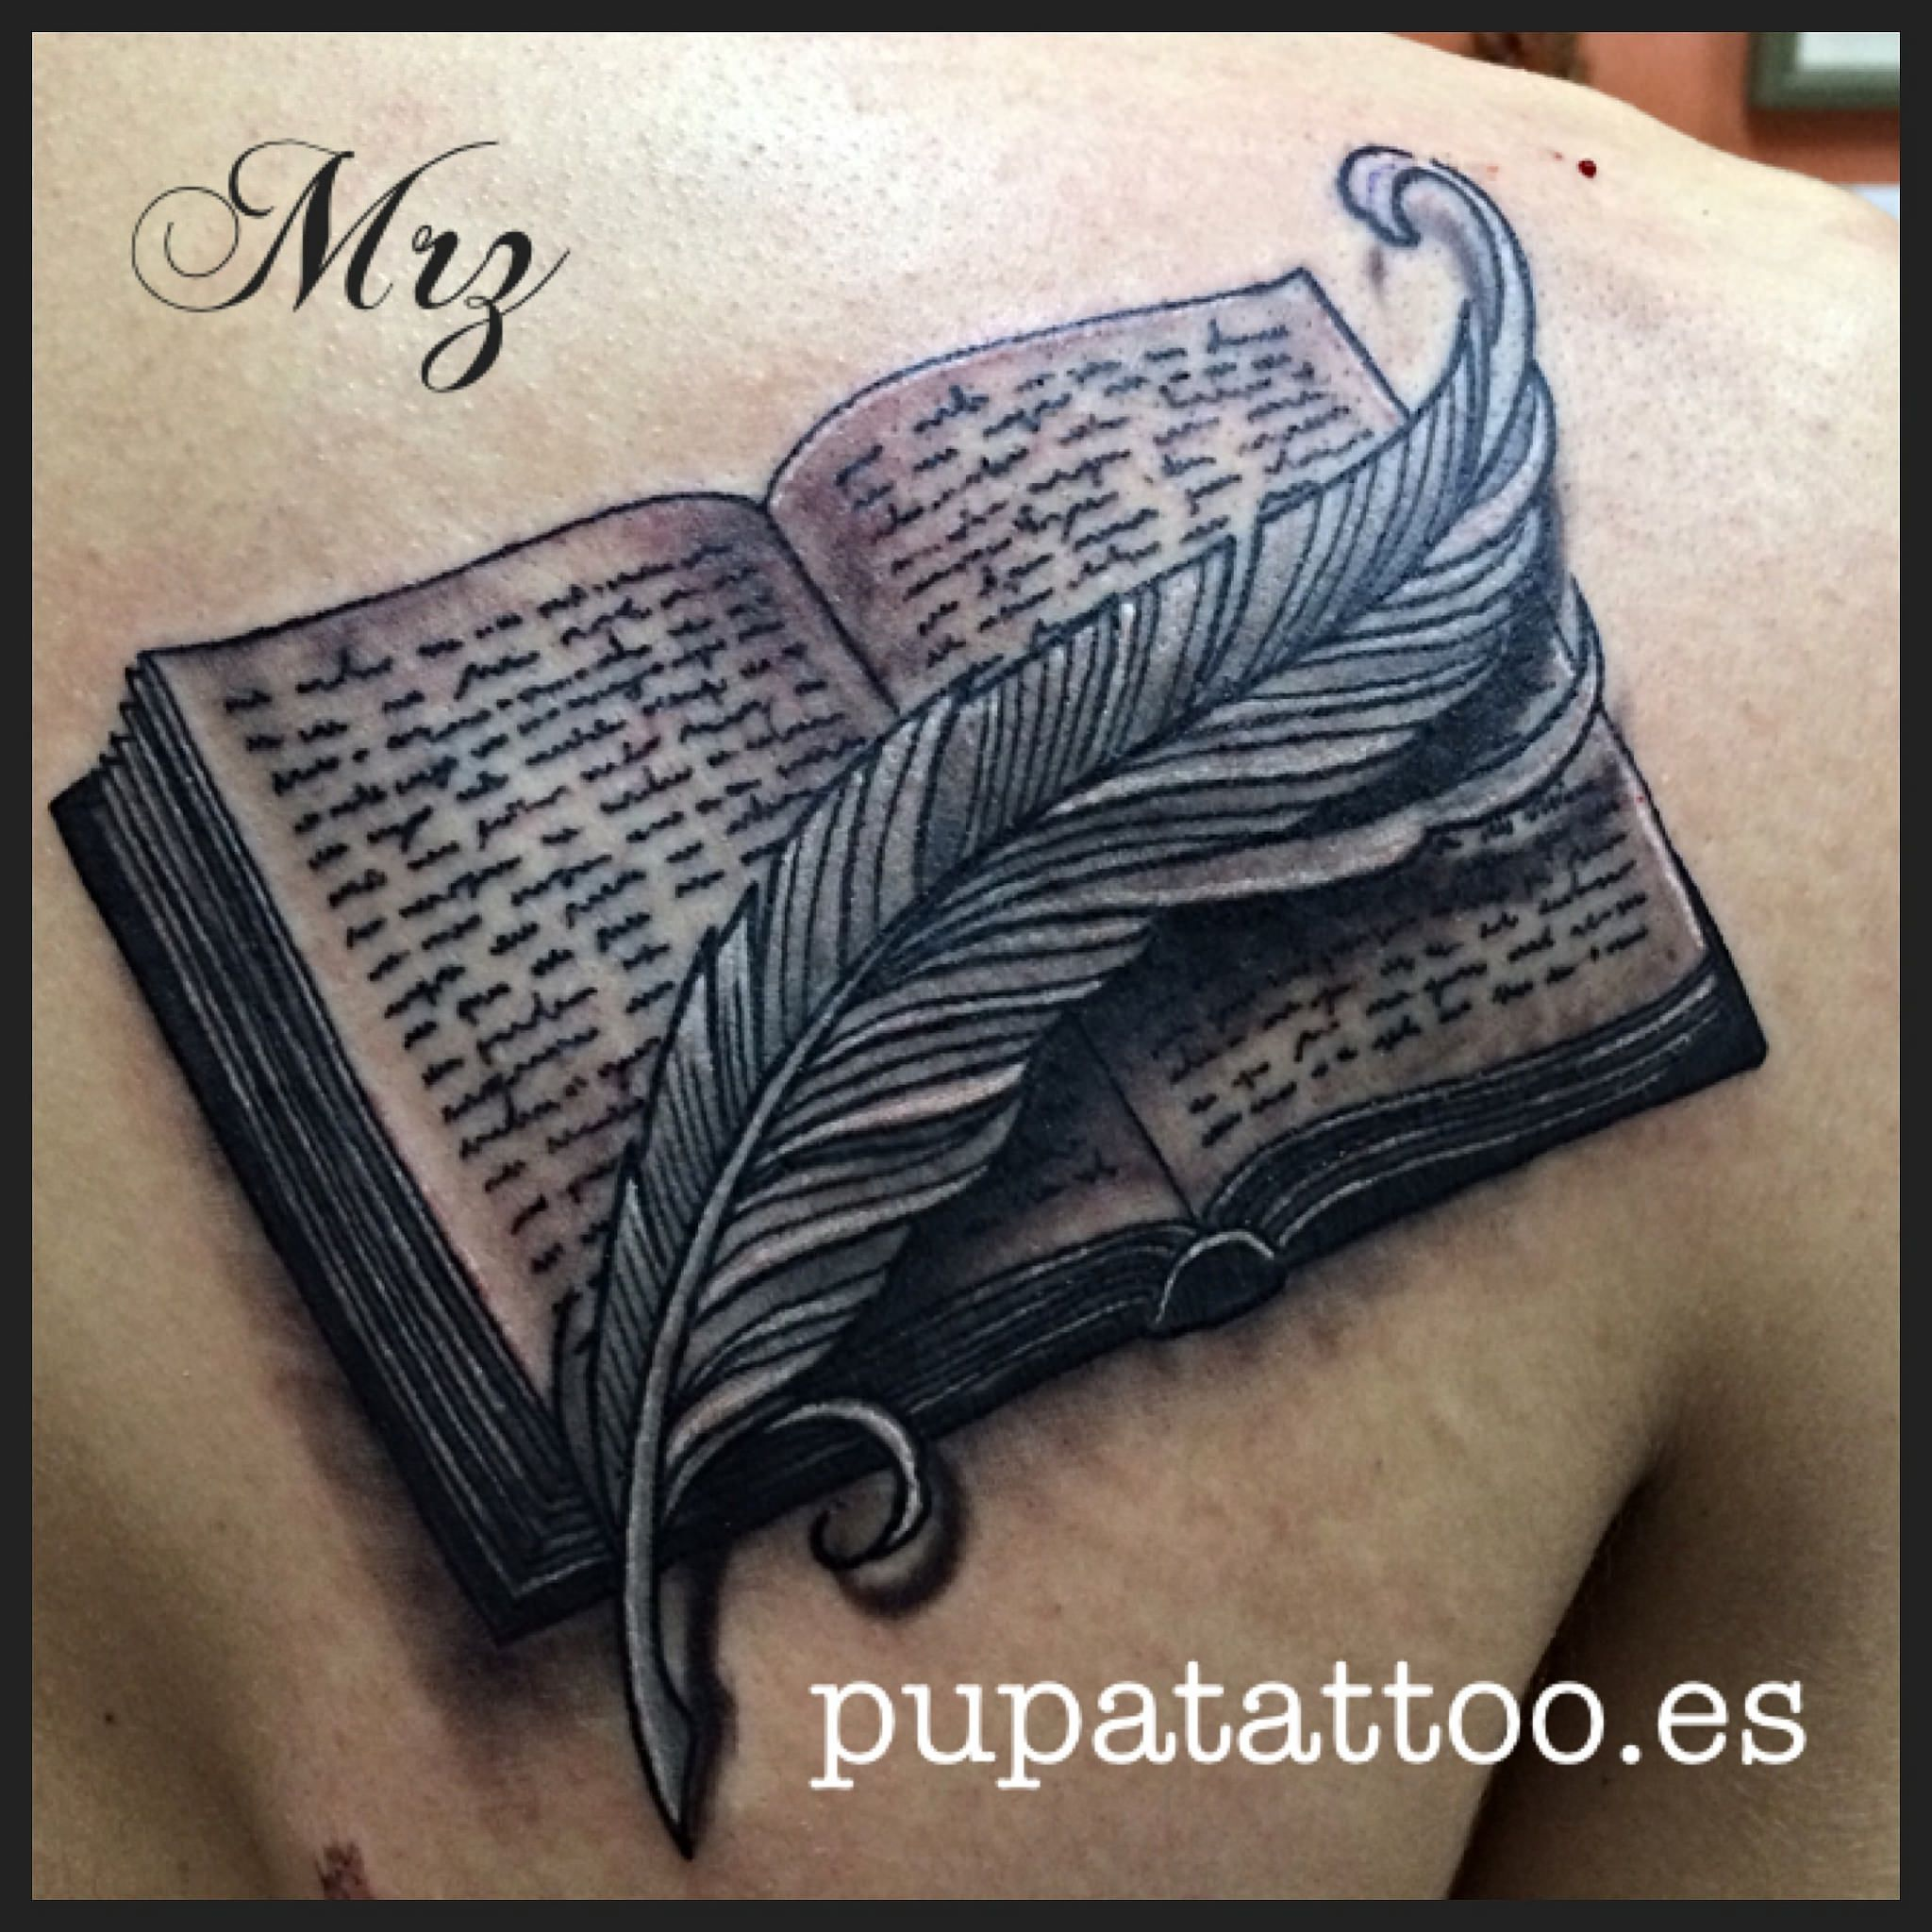 Tatuaje Libro Pupa Tattoo Granada Black Grey Tattoo Tatuajes